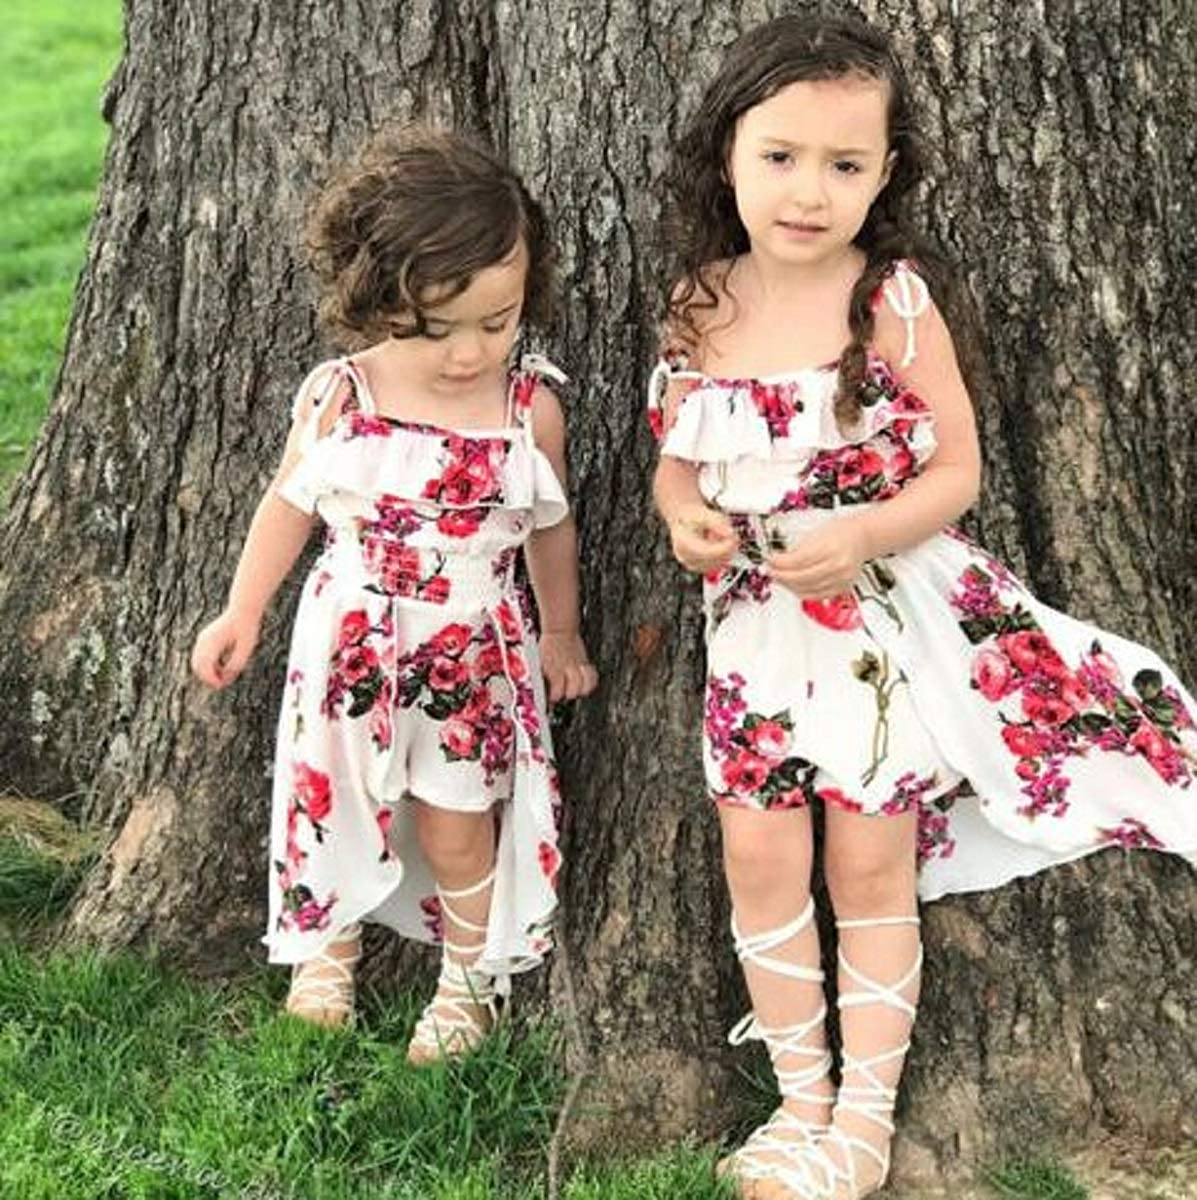 Preciashopping Floral Toddler Kids Baby Girl Clothes Romper Bodysuit Jumpsuit Outfits Dresses Yellow 12-24 Months